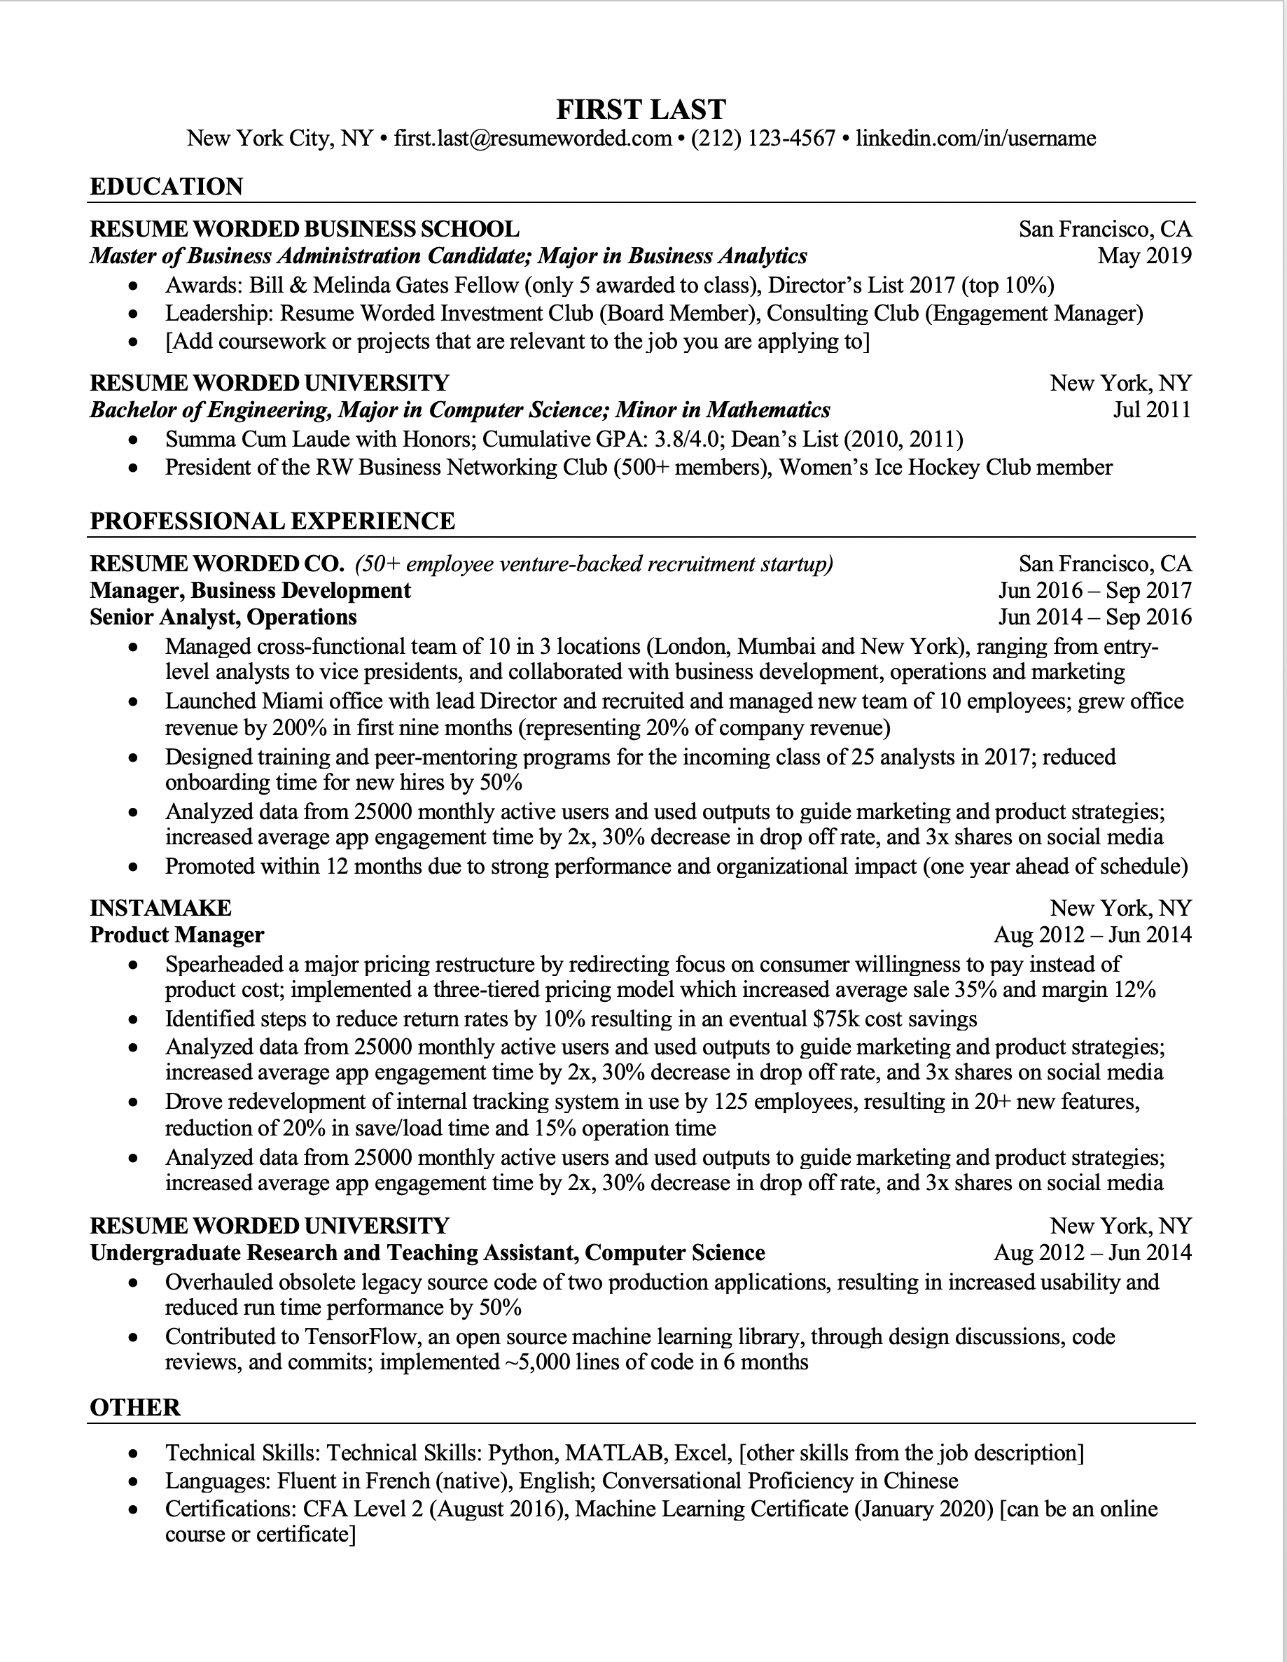 Template Of A Resume Professional Ats Resume Templates For Experienced Hires And